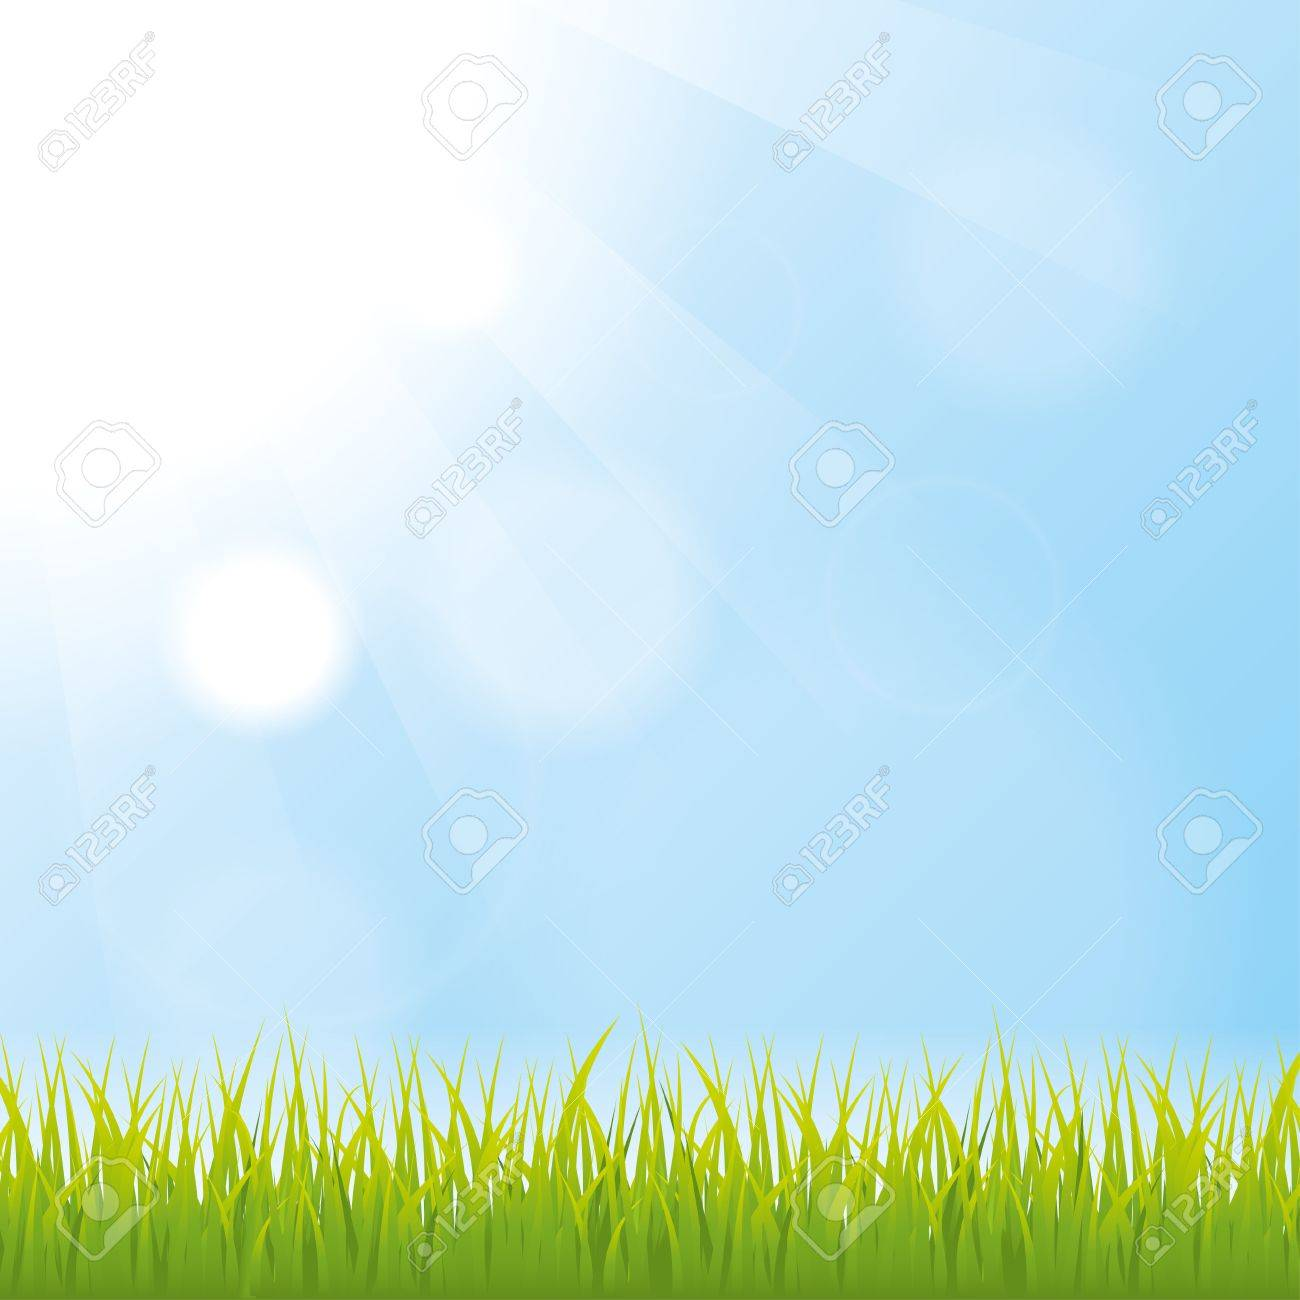 grass. nature background. vector. eps10 Stock Vector - 24901455